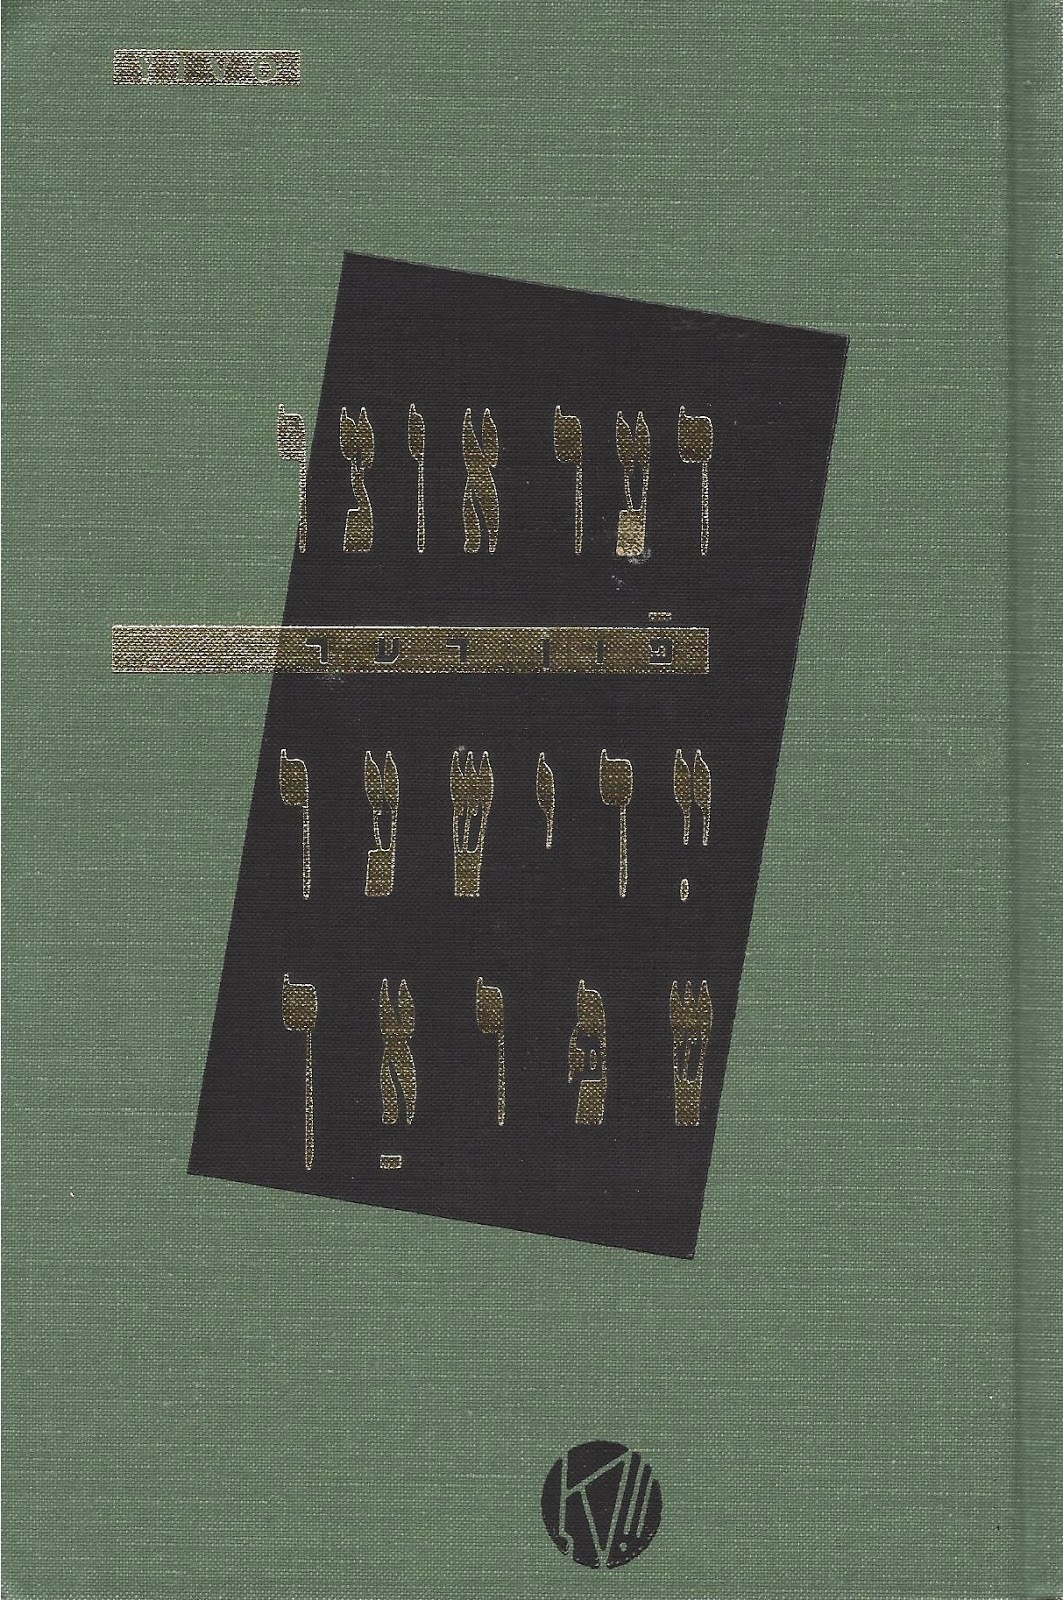 <p>Nahum Stutchkoff&#8217;s <em>Thesaurus of the Yiddish Language</em> (Oytser fun der yidisher&nbsp;shprakh)</p>